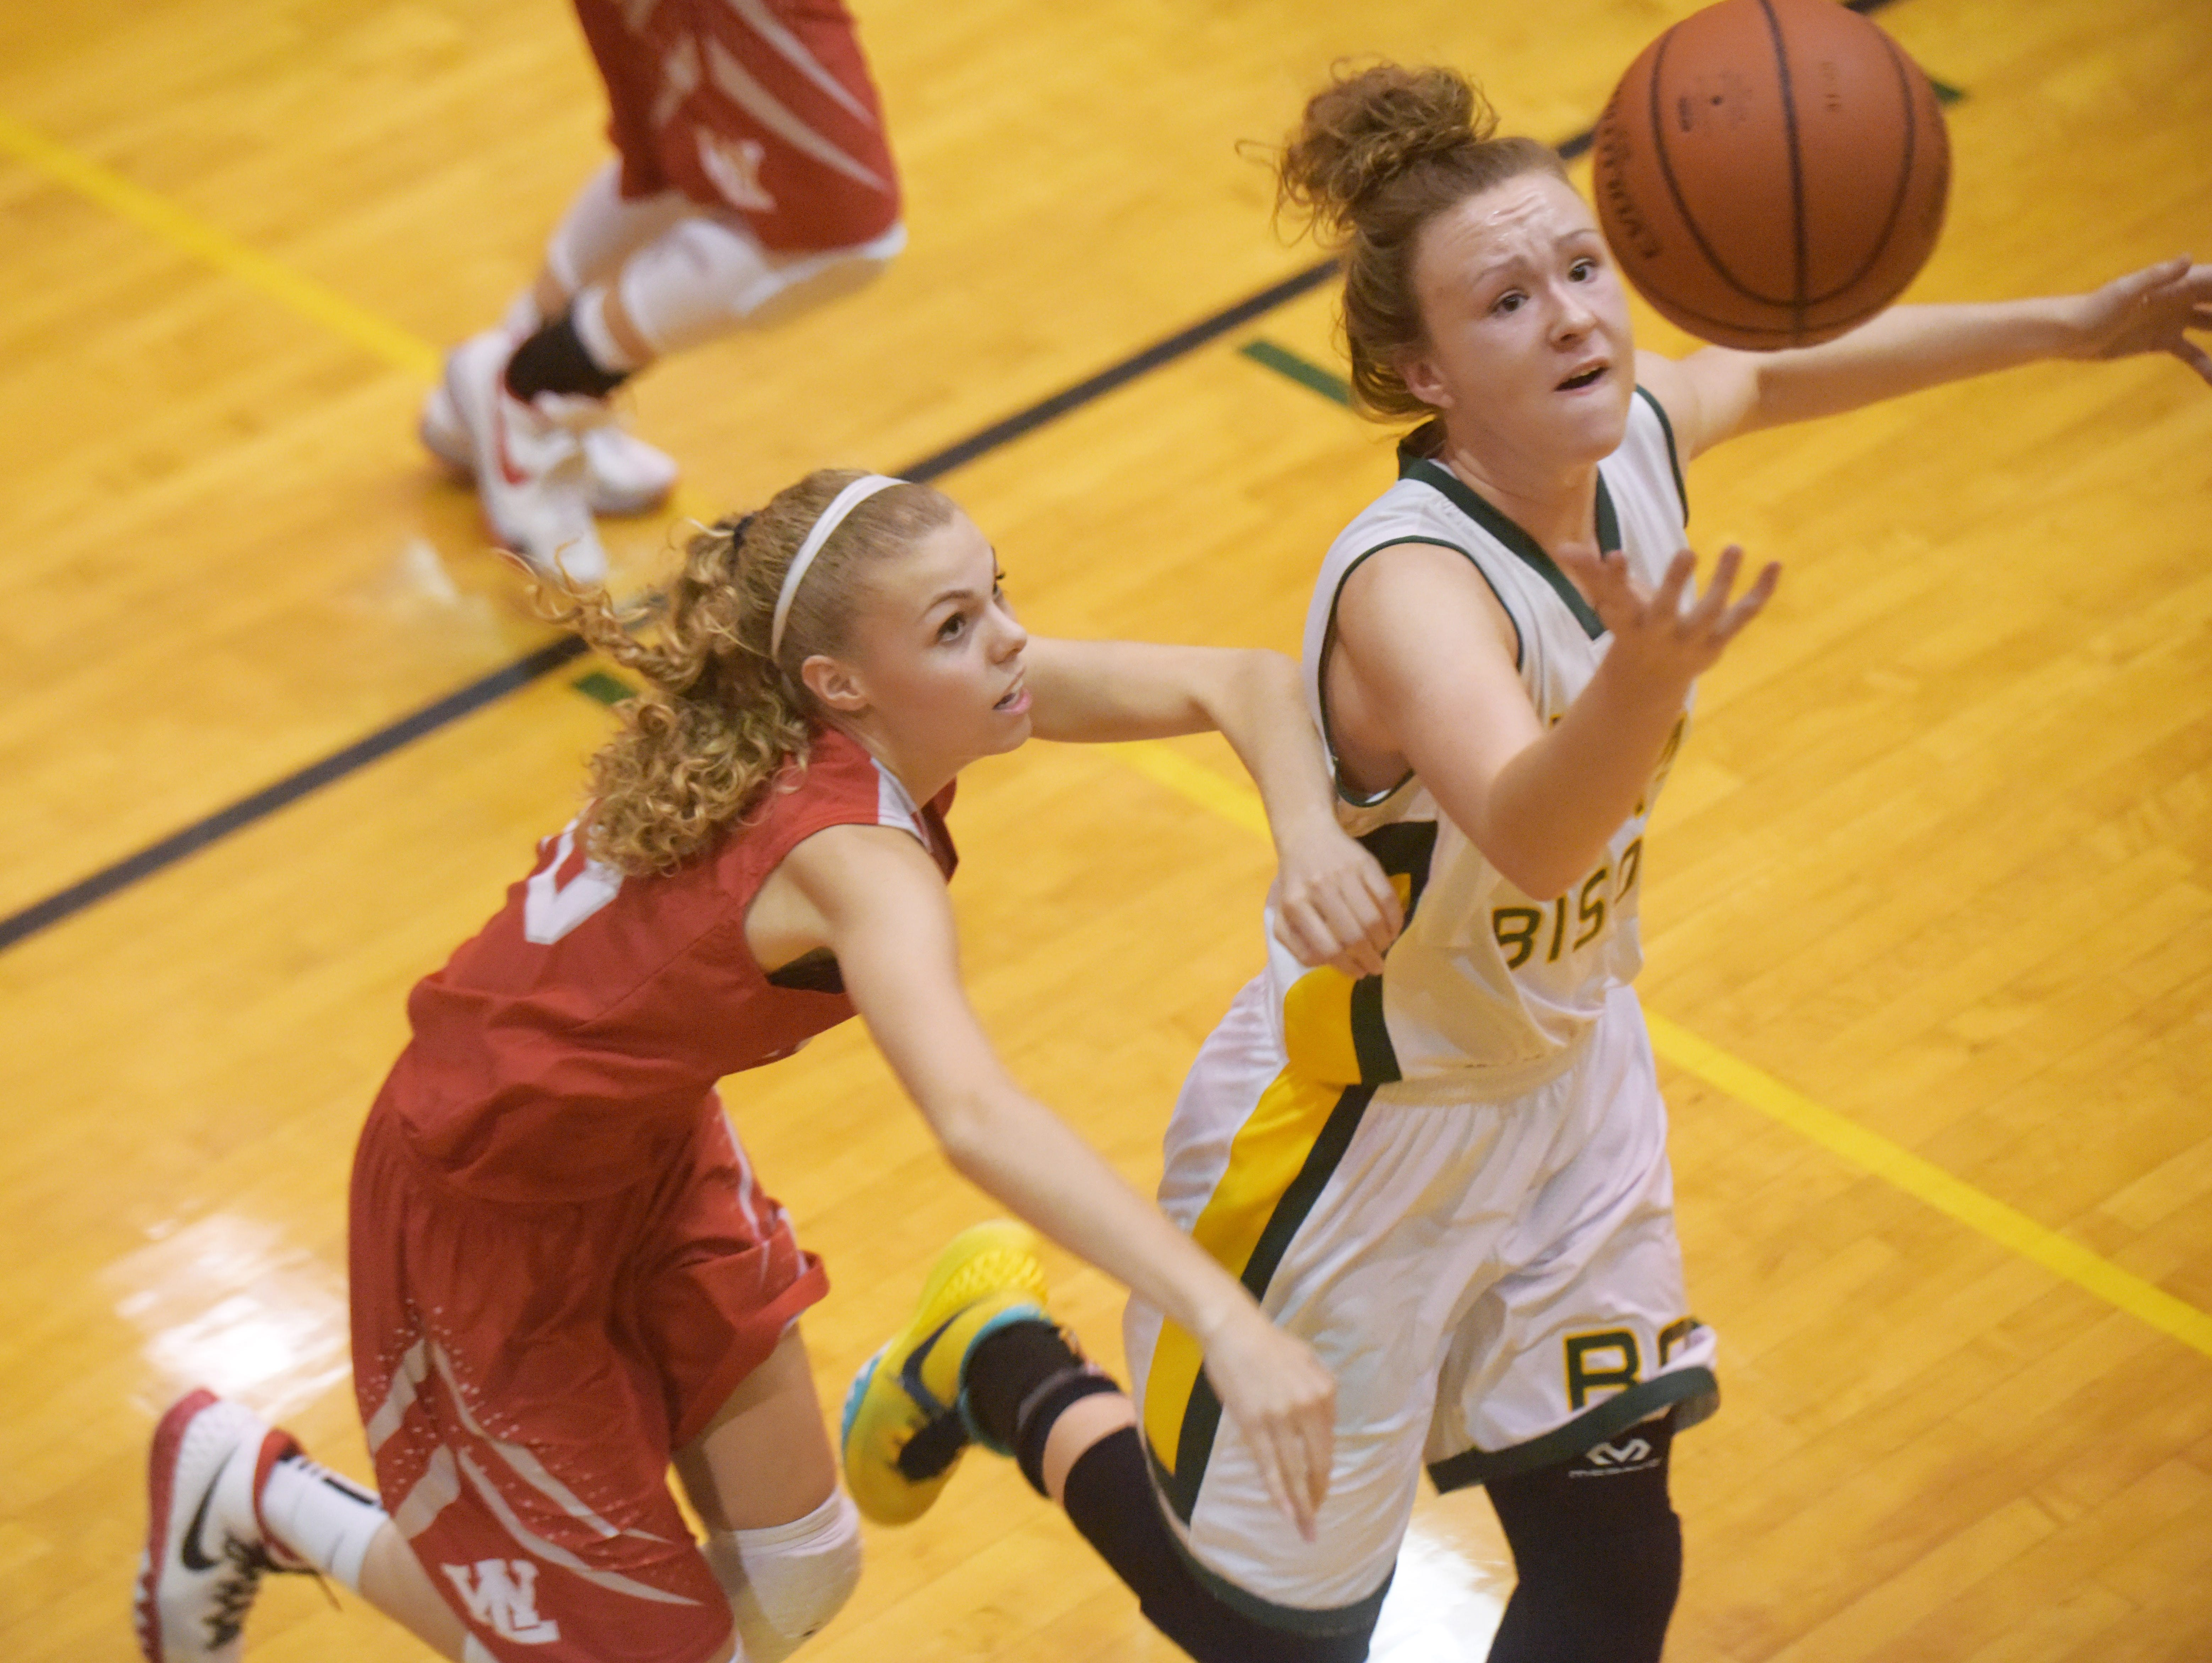 Benton Central's Katie Shields, right, goes for a ball with a West Lafayette defender following Thursday, December 10, 2015 at Benton Central High School. Benton Central was victorious over West Lafayette.